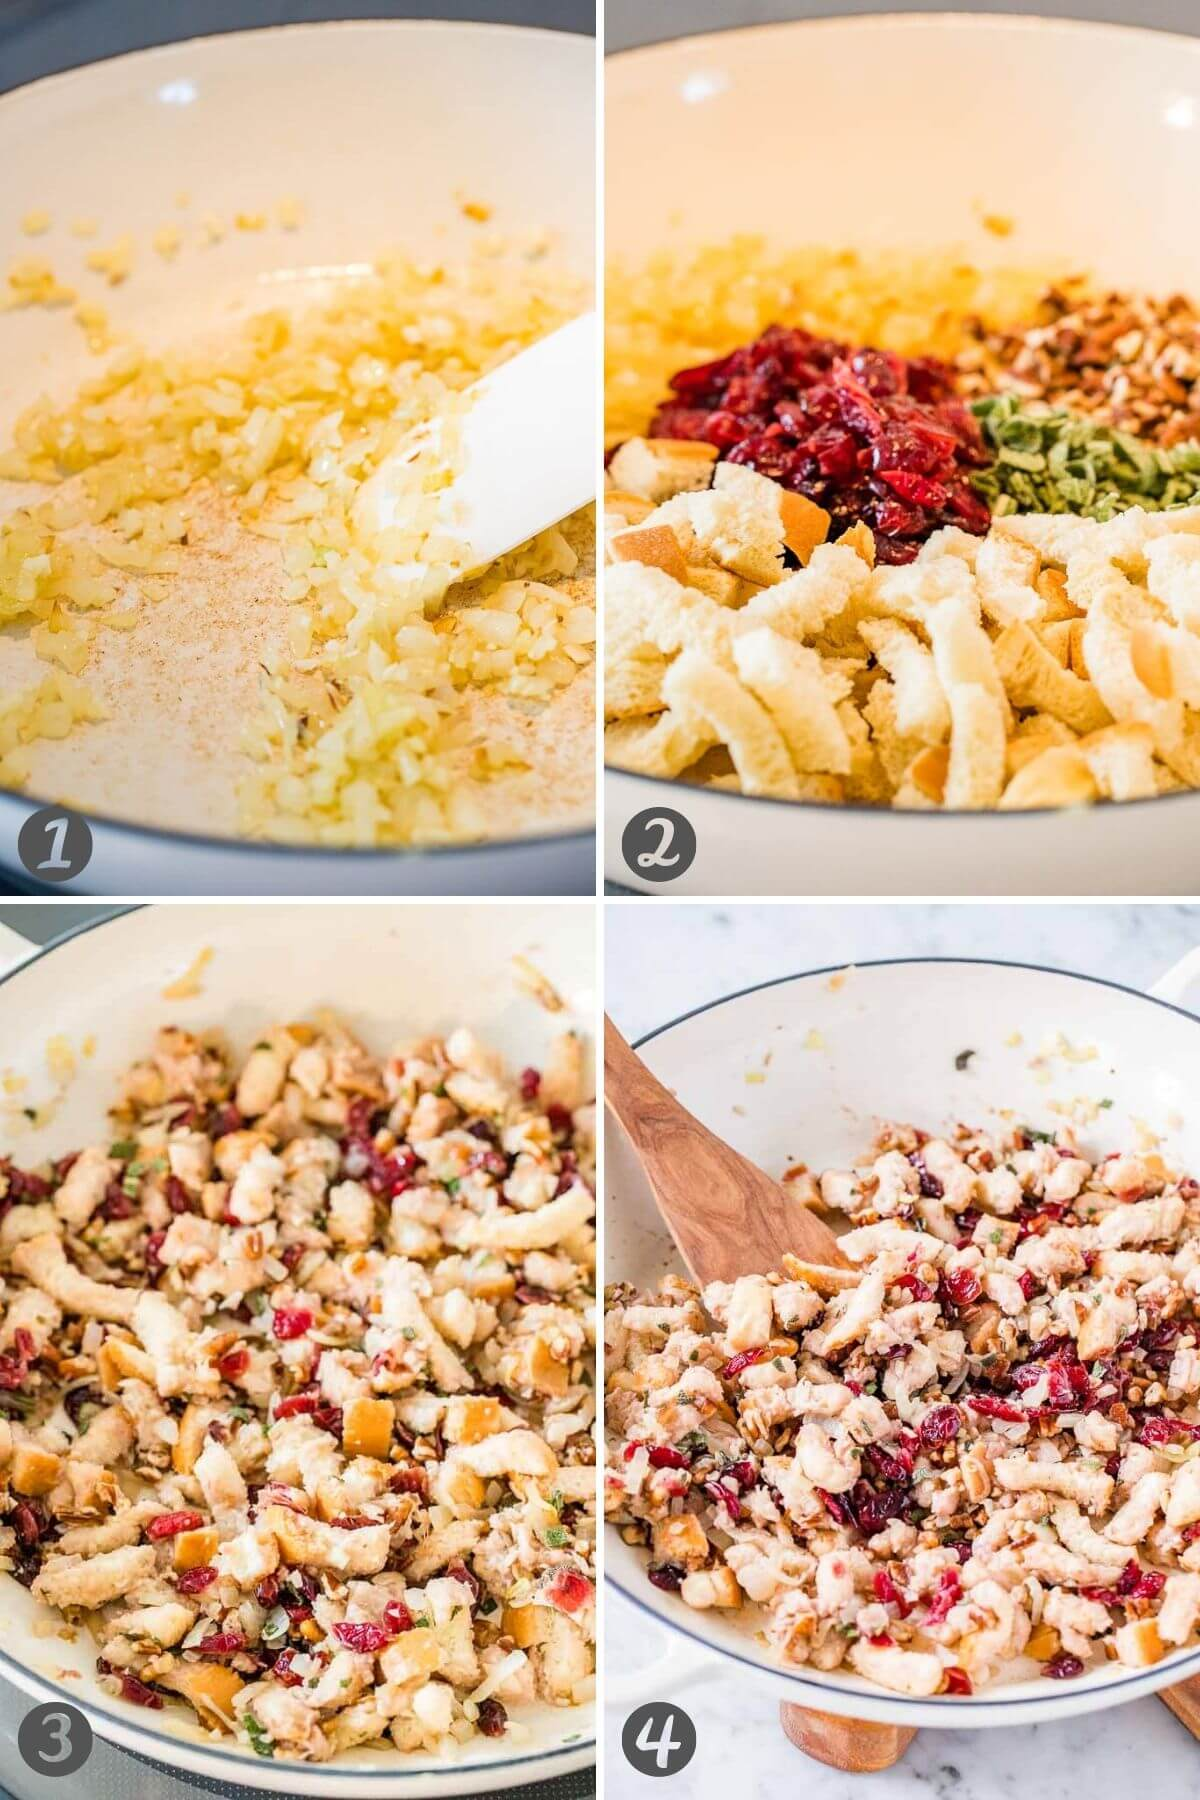 Step by step instructions for how to make stuffing